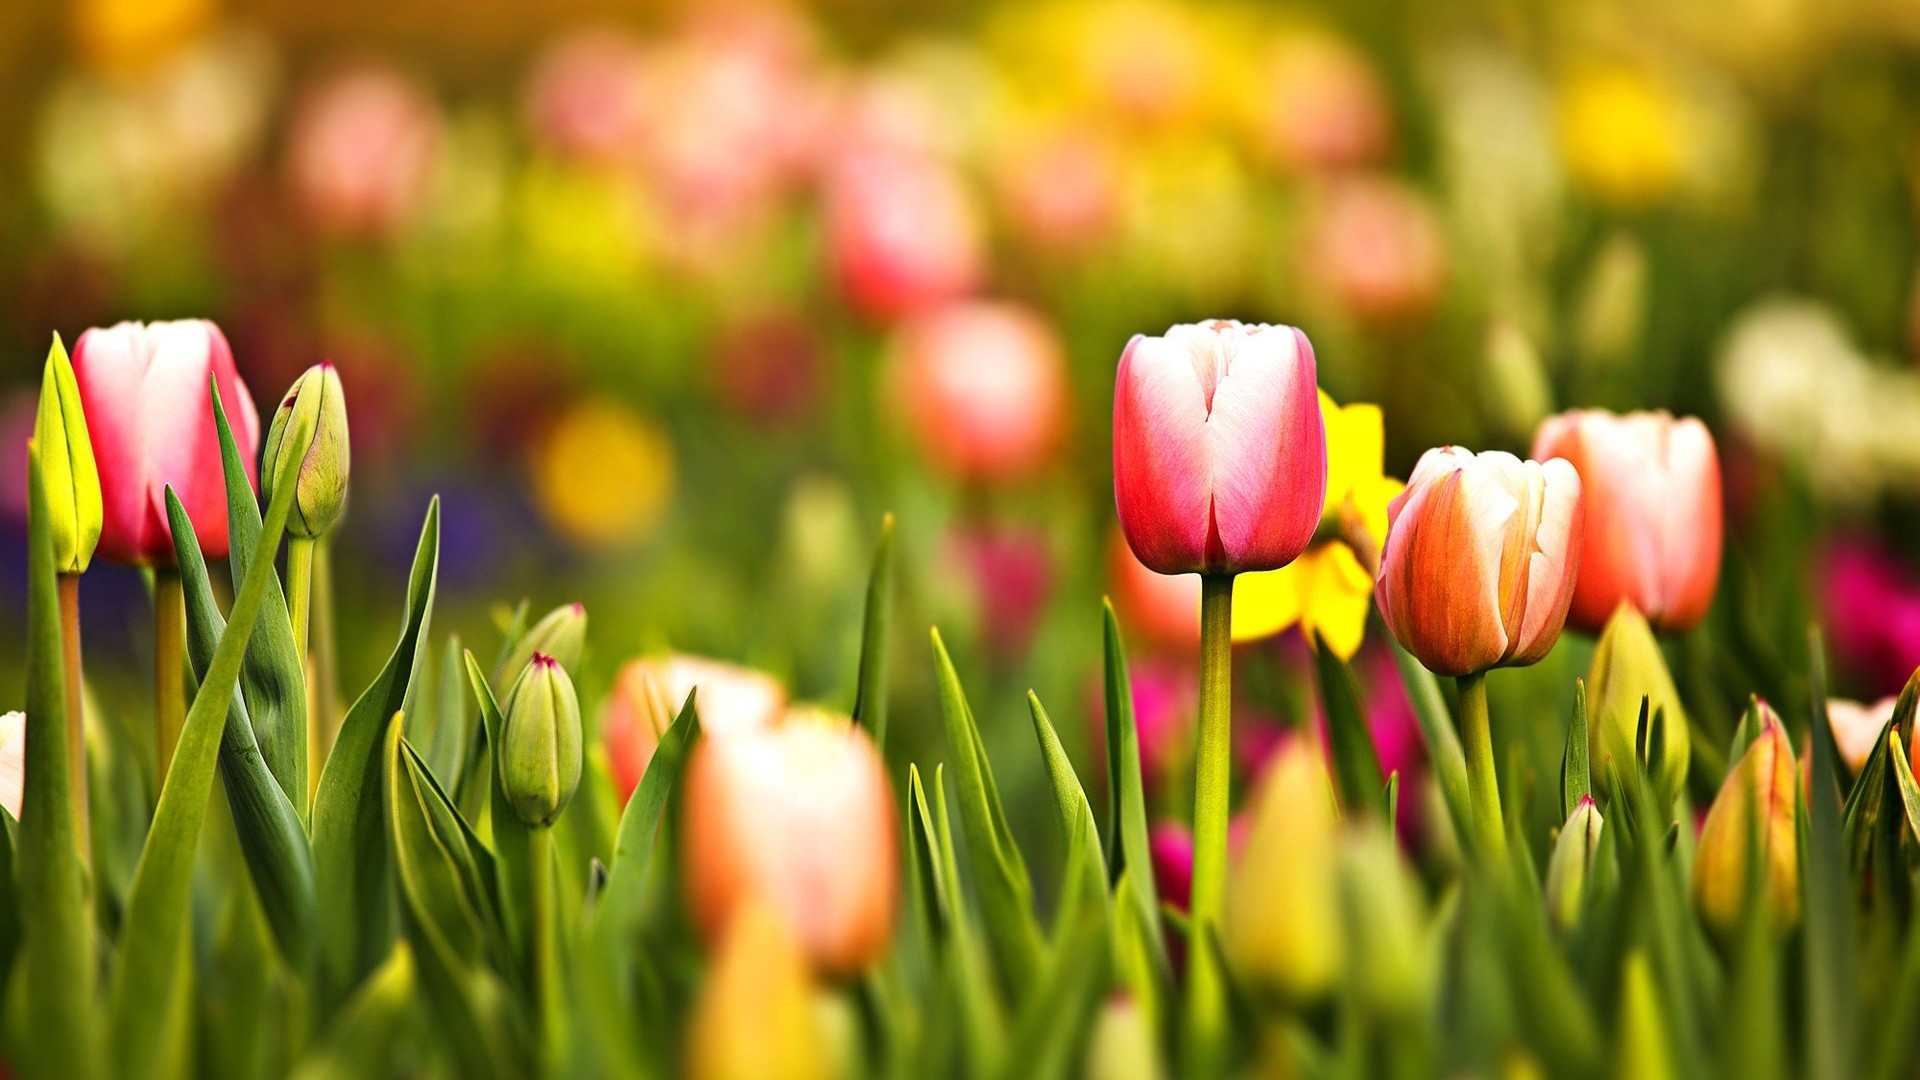 1920x1080 Free Desktop Wallpapers Tulips Wallpapers Wide Tulips HDQ